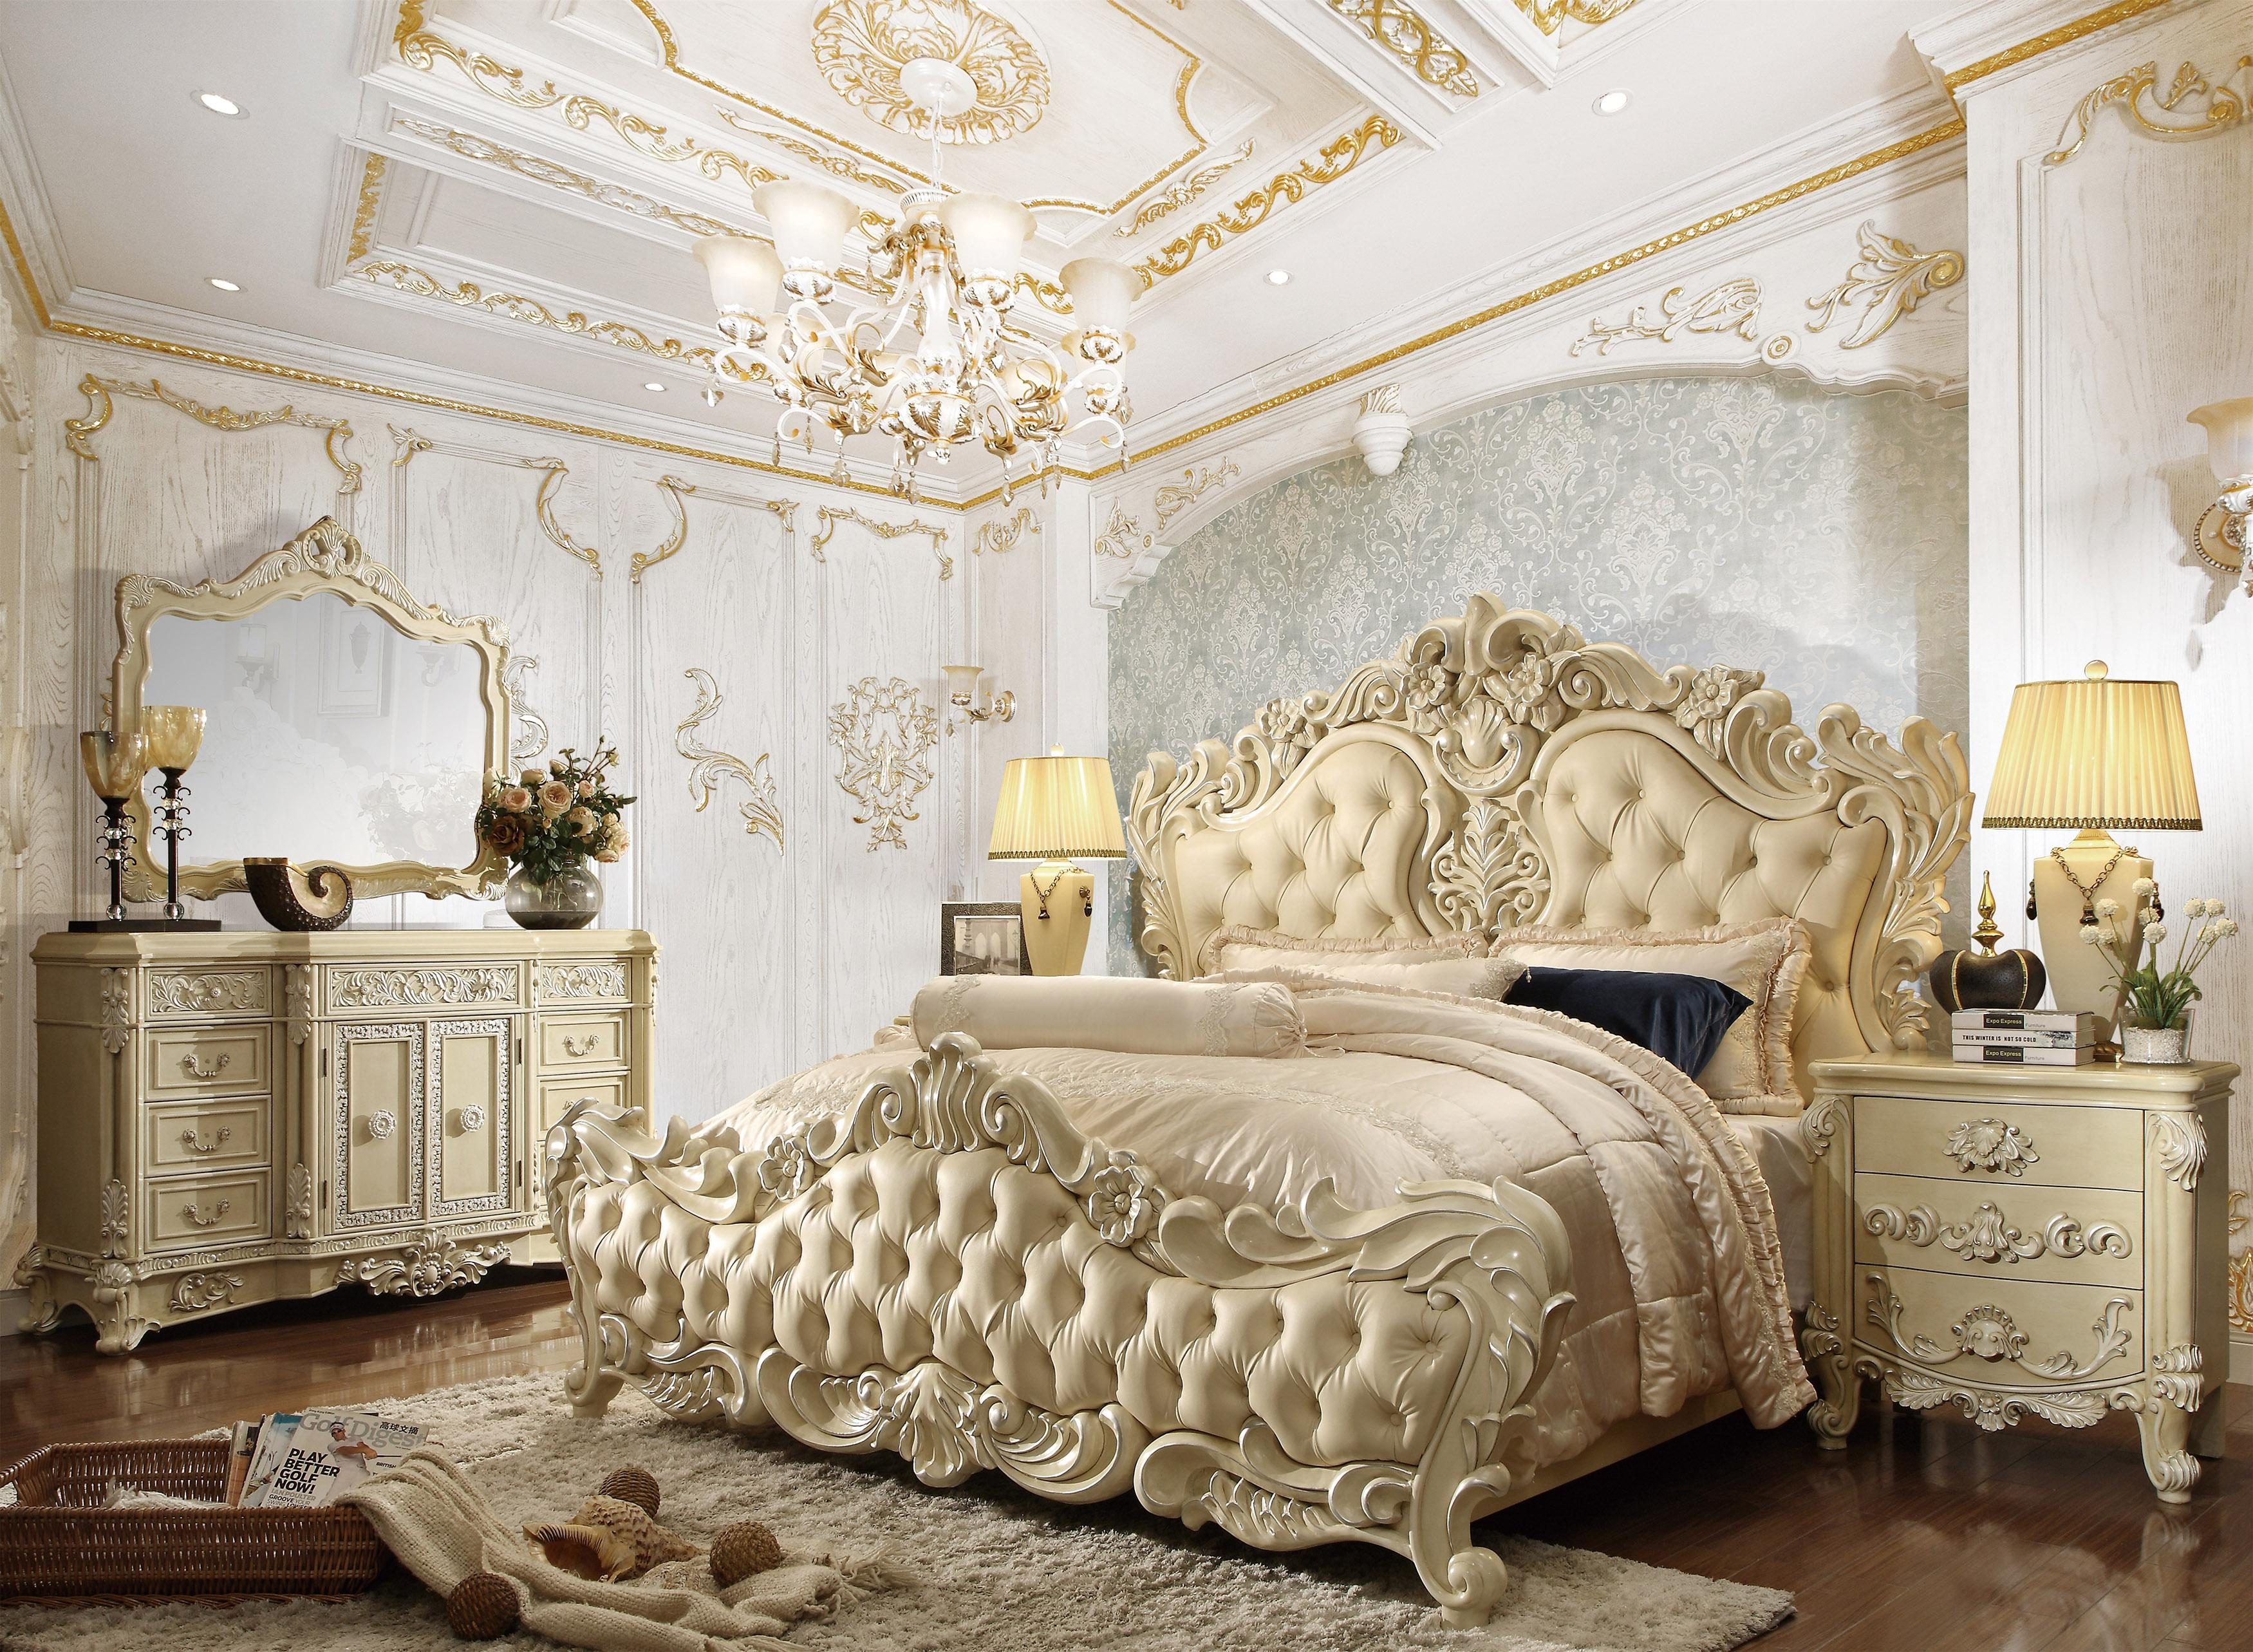 Luxury Cream Cal King Bedroom 5pcs Carved Wood Traditional Homey Design Hd 5800 Hd 5800 Bset5 Ck